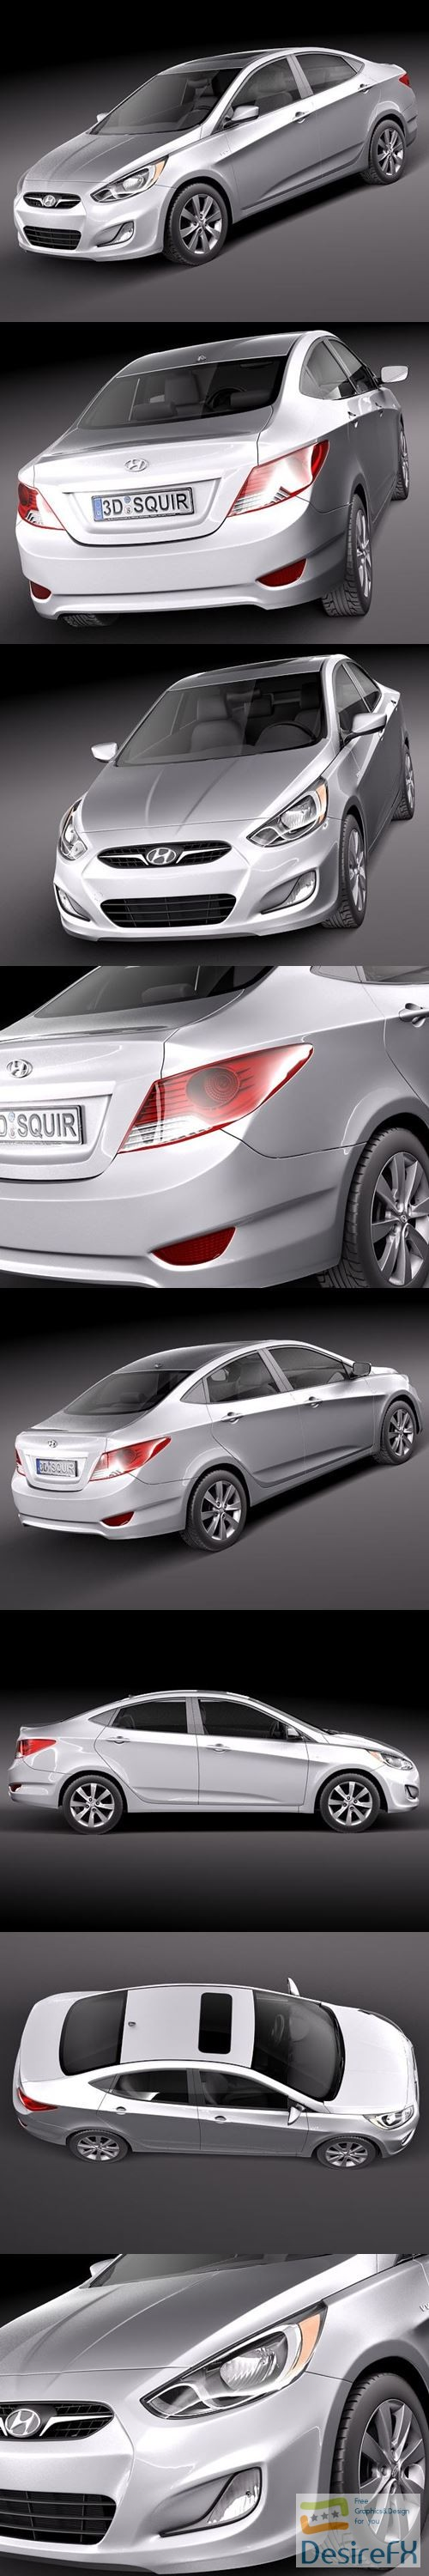 3d-models - Hyundai Accent sedan 2012 3D Model